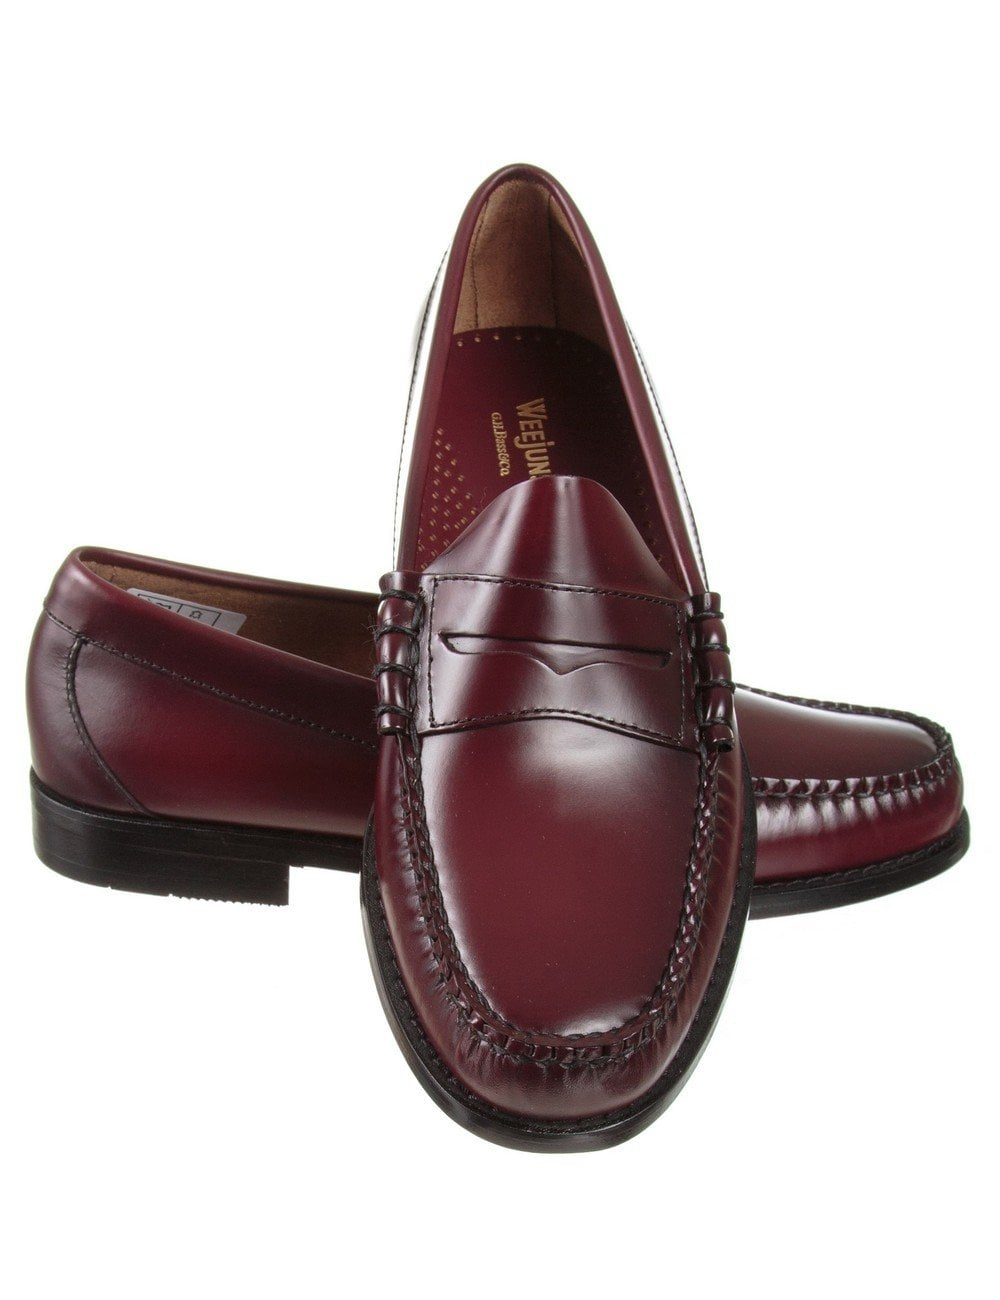 508ae0a147f Bass Weejuns Larson Penny Loafer - Wine - Shoes   Boots from Fat ...